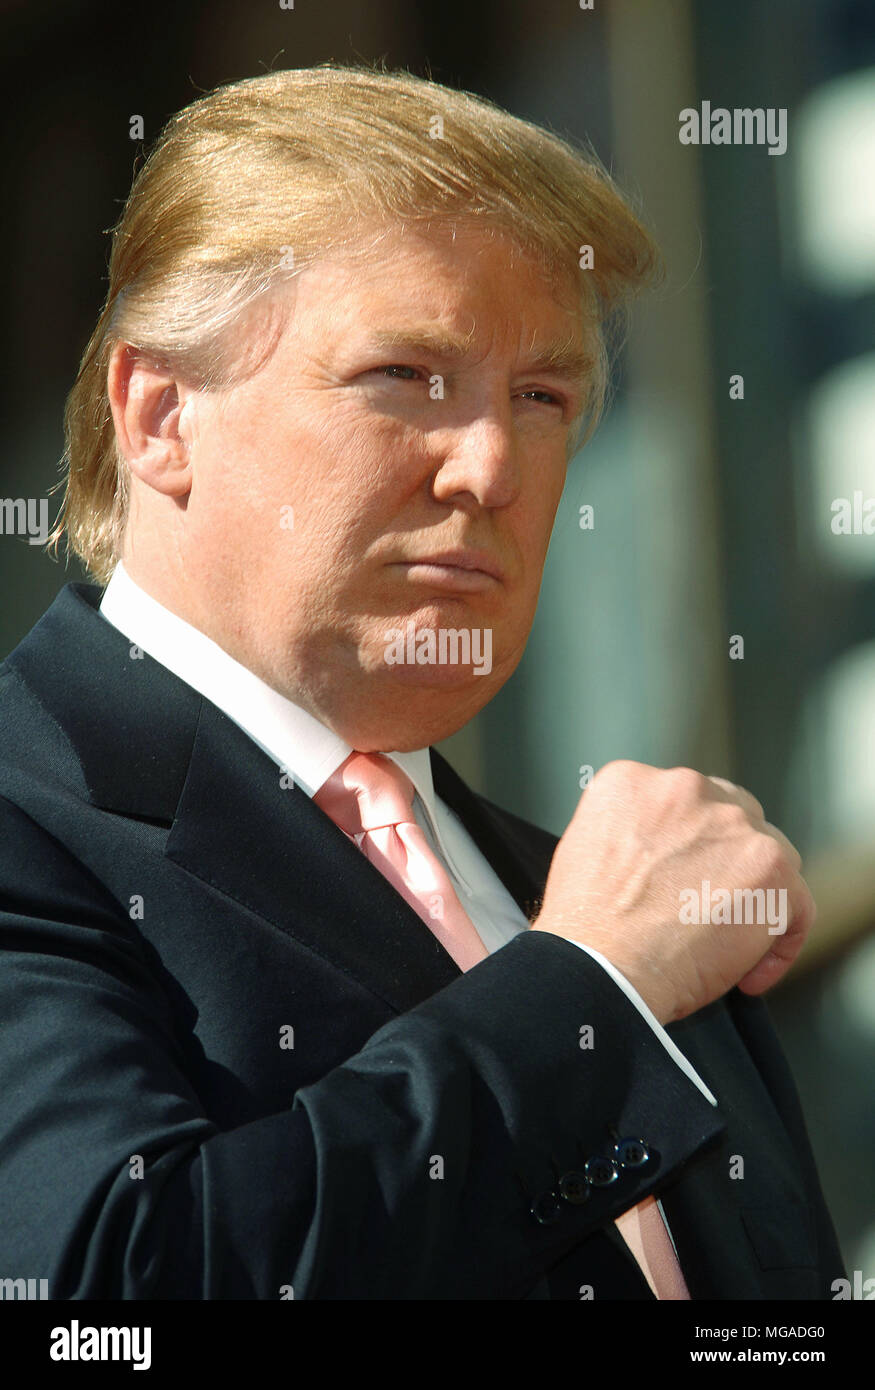 Donald Trump received a Star on the Hollywood Walk of Fame In Los Angeles.. January 16, 2007.  portrait headshot - Stock Image